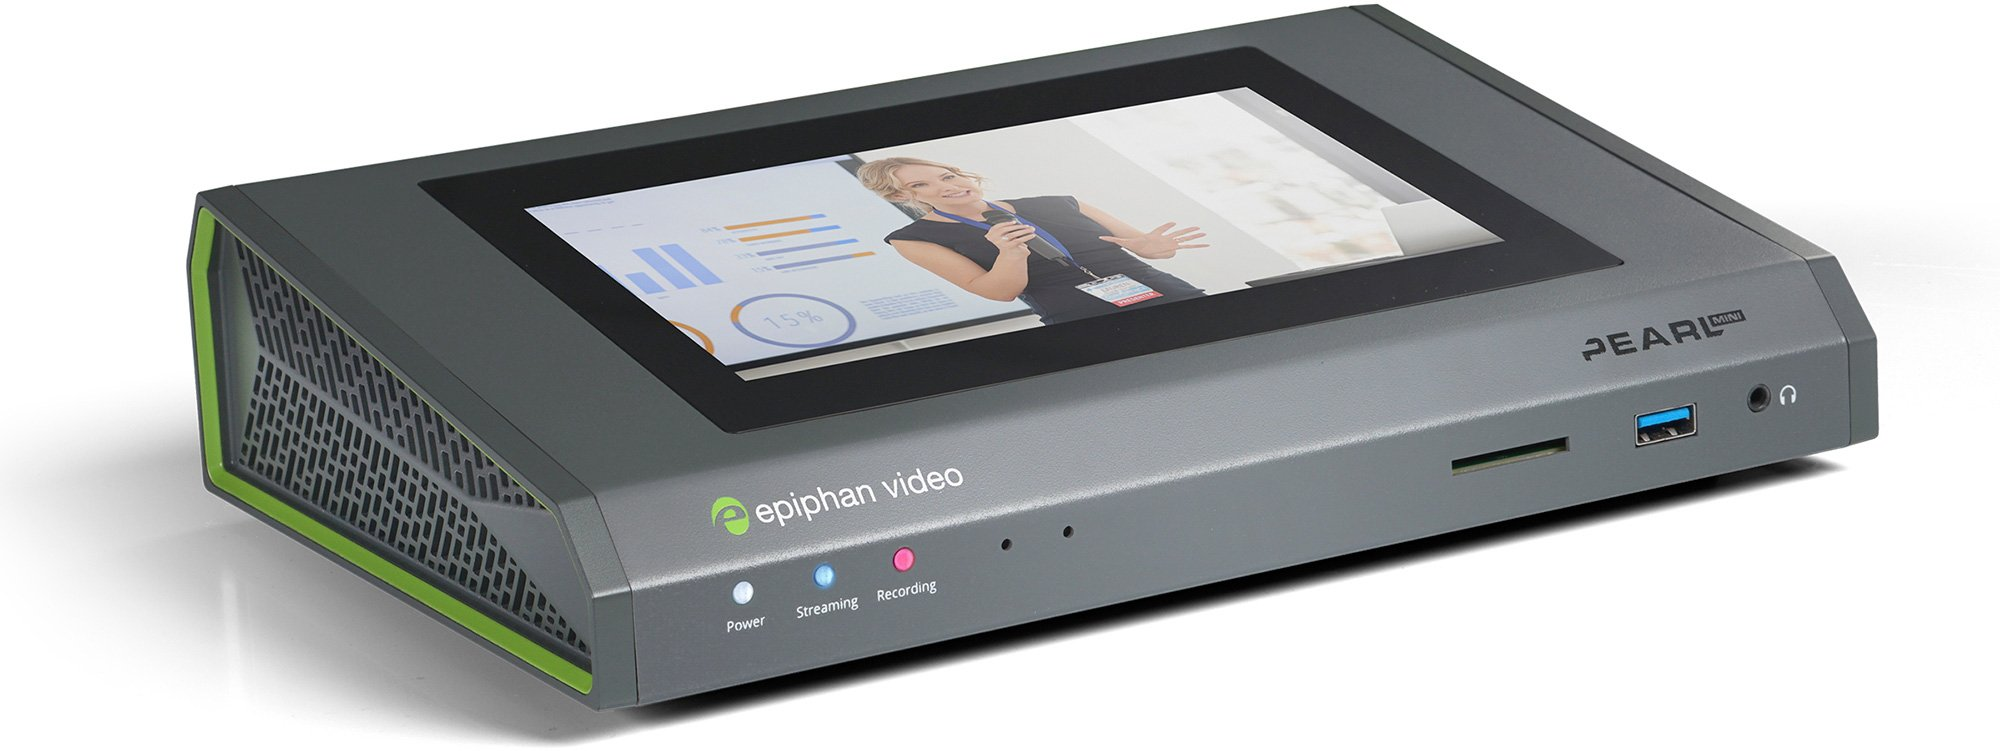 Epiphan Esp1440 Pearl Mini All In One Video Production System